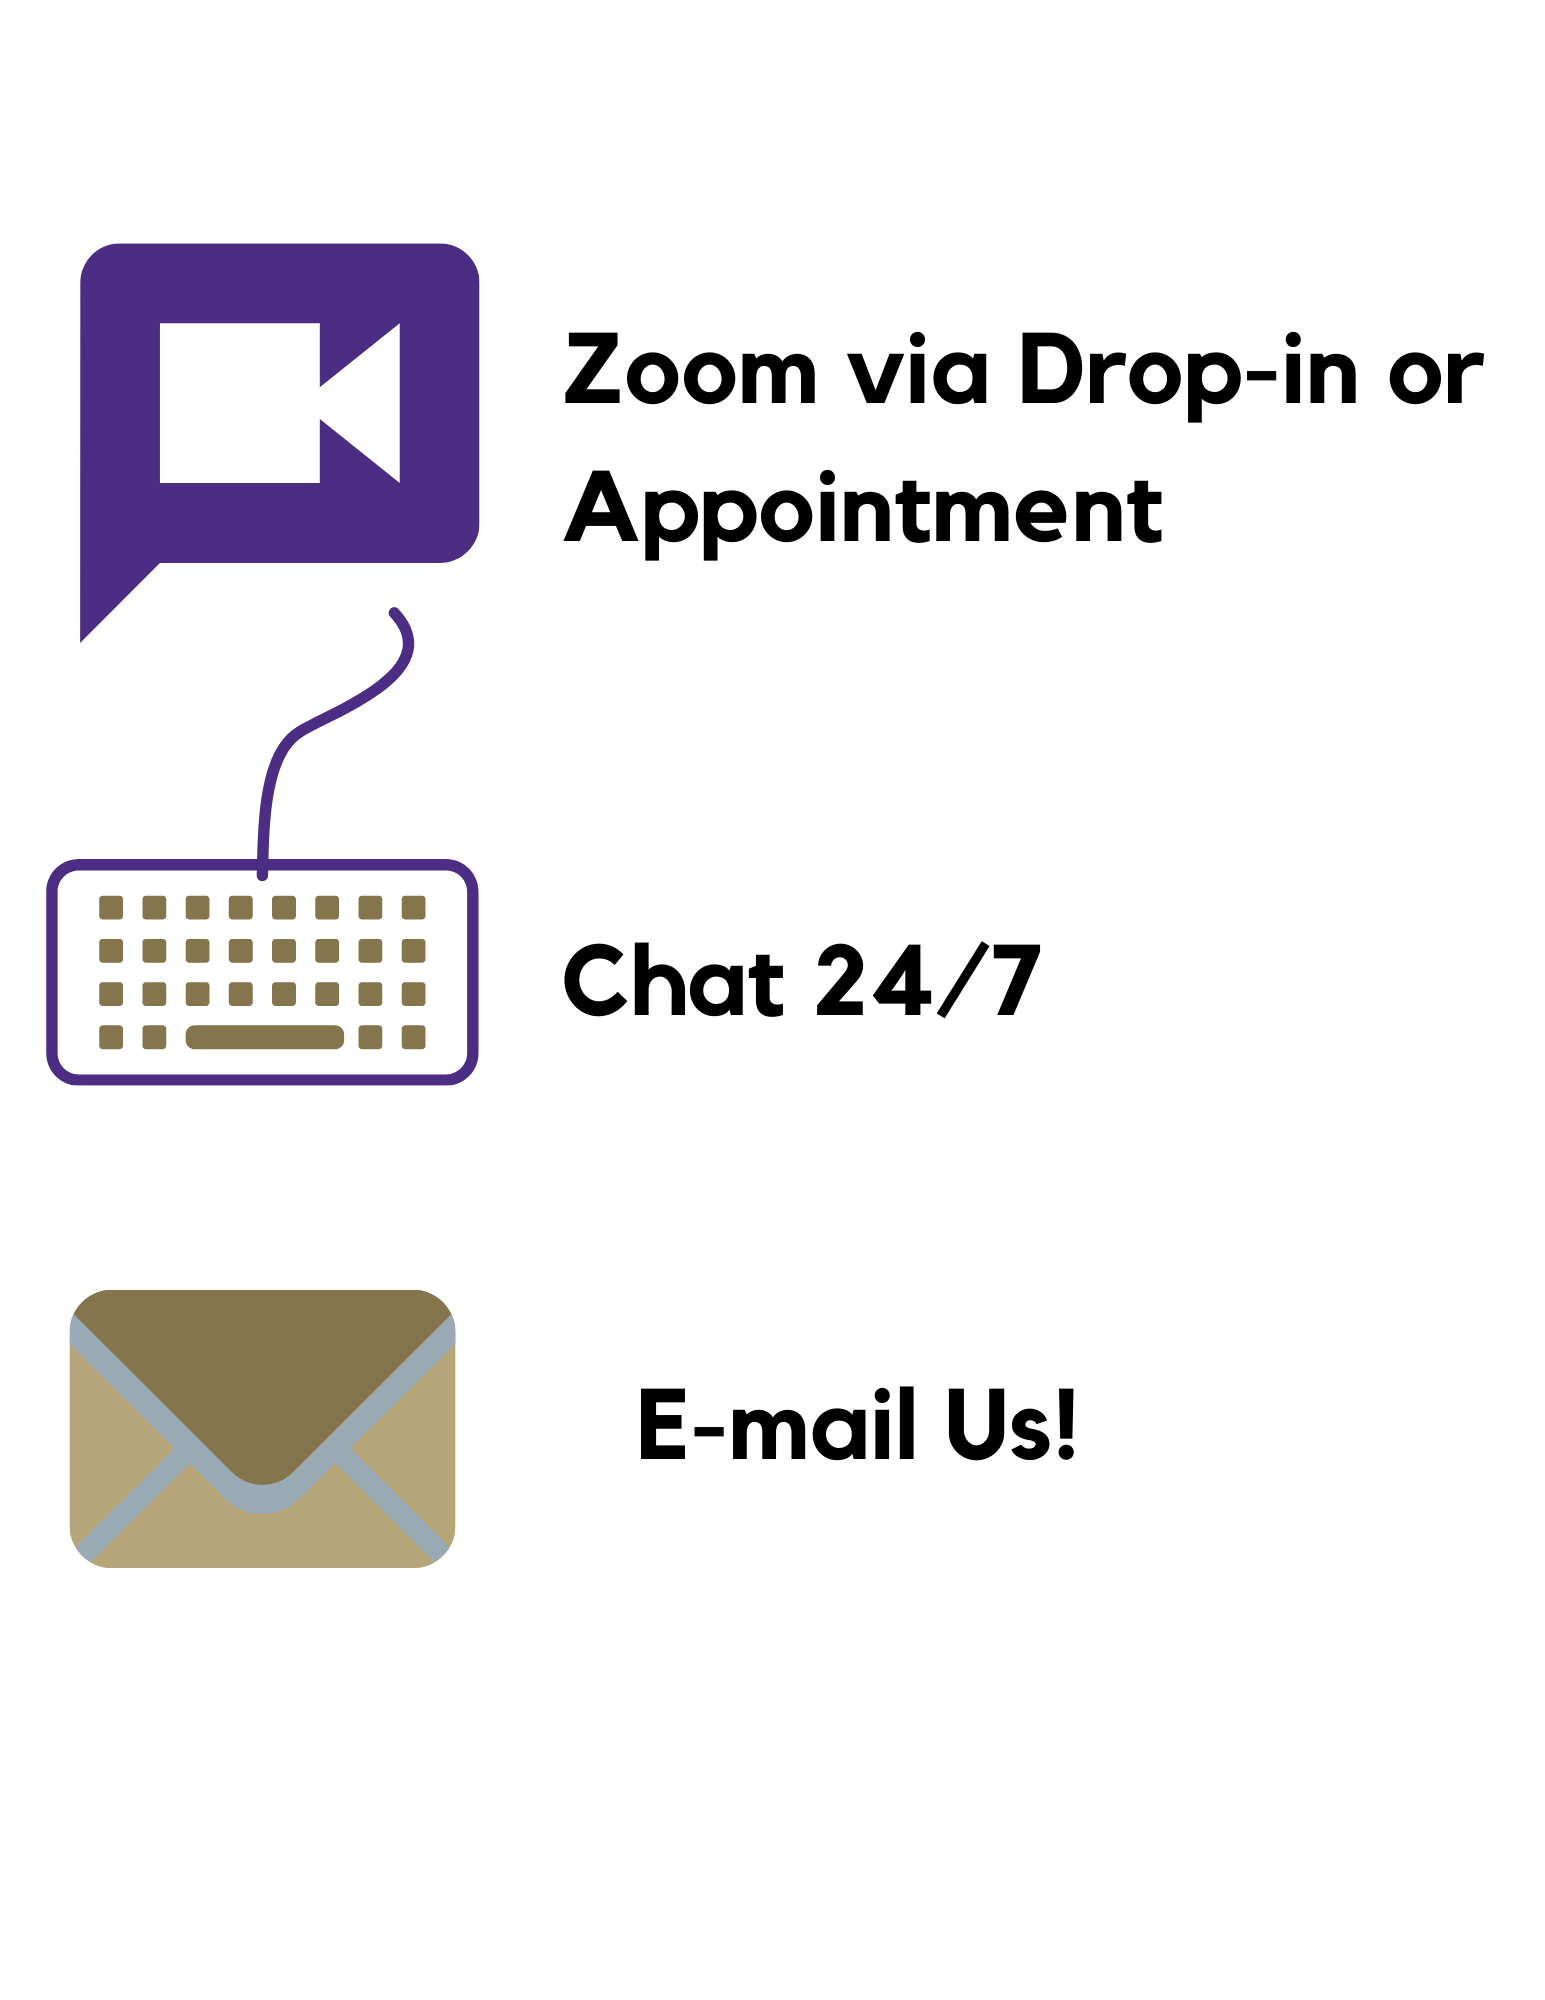 Images representing chat, email, and video teleconference.